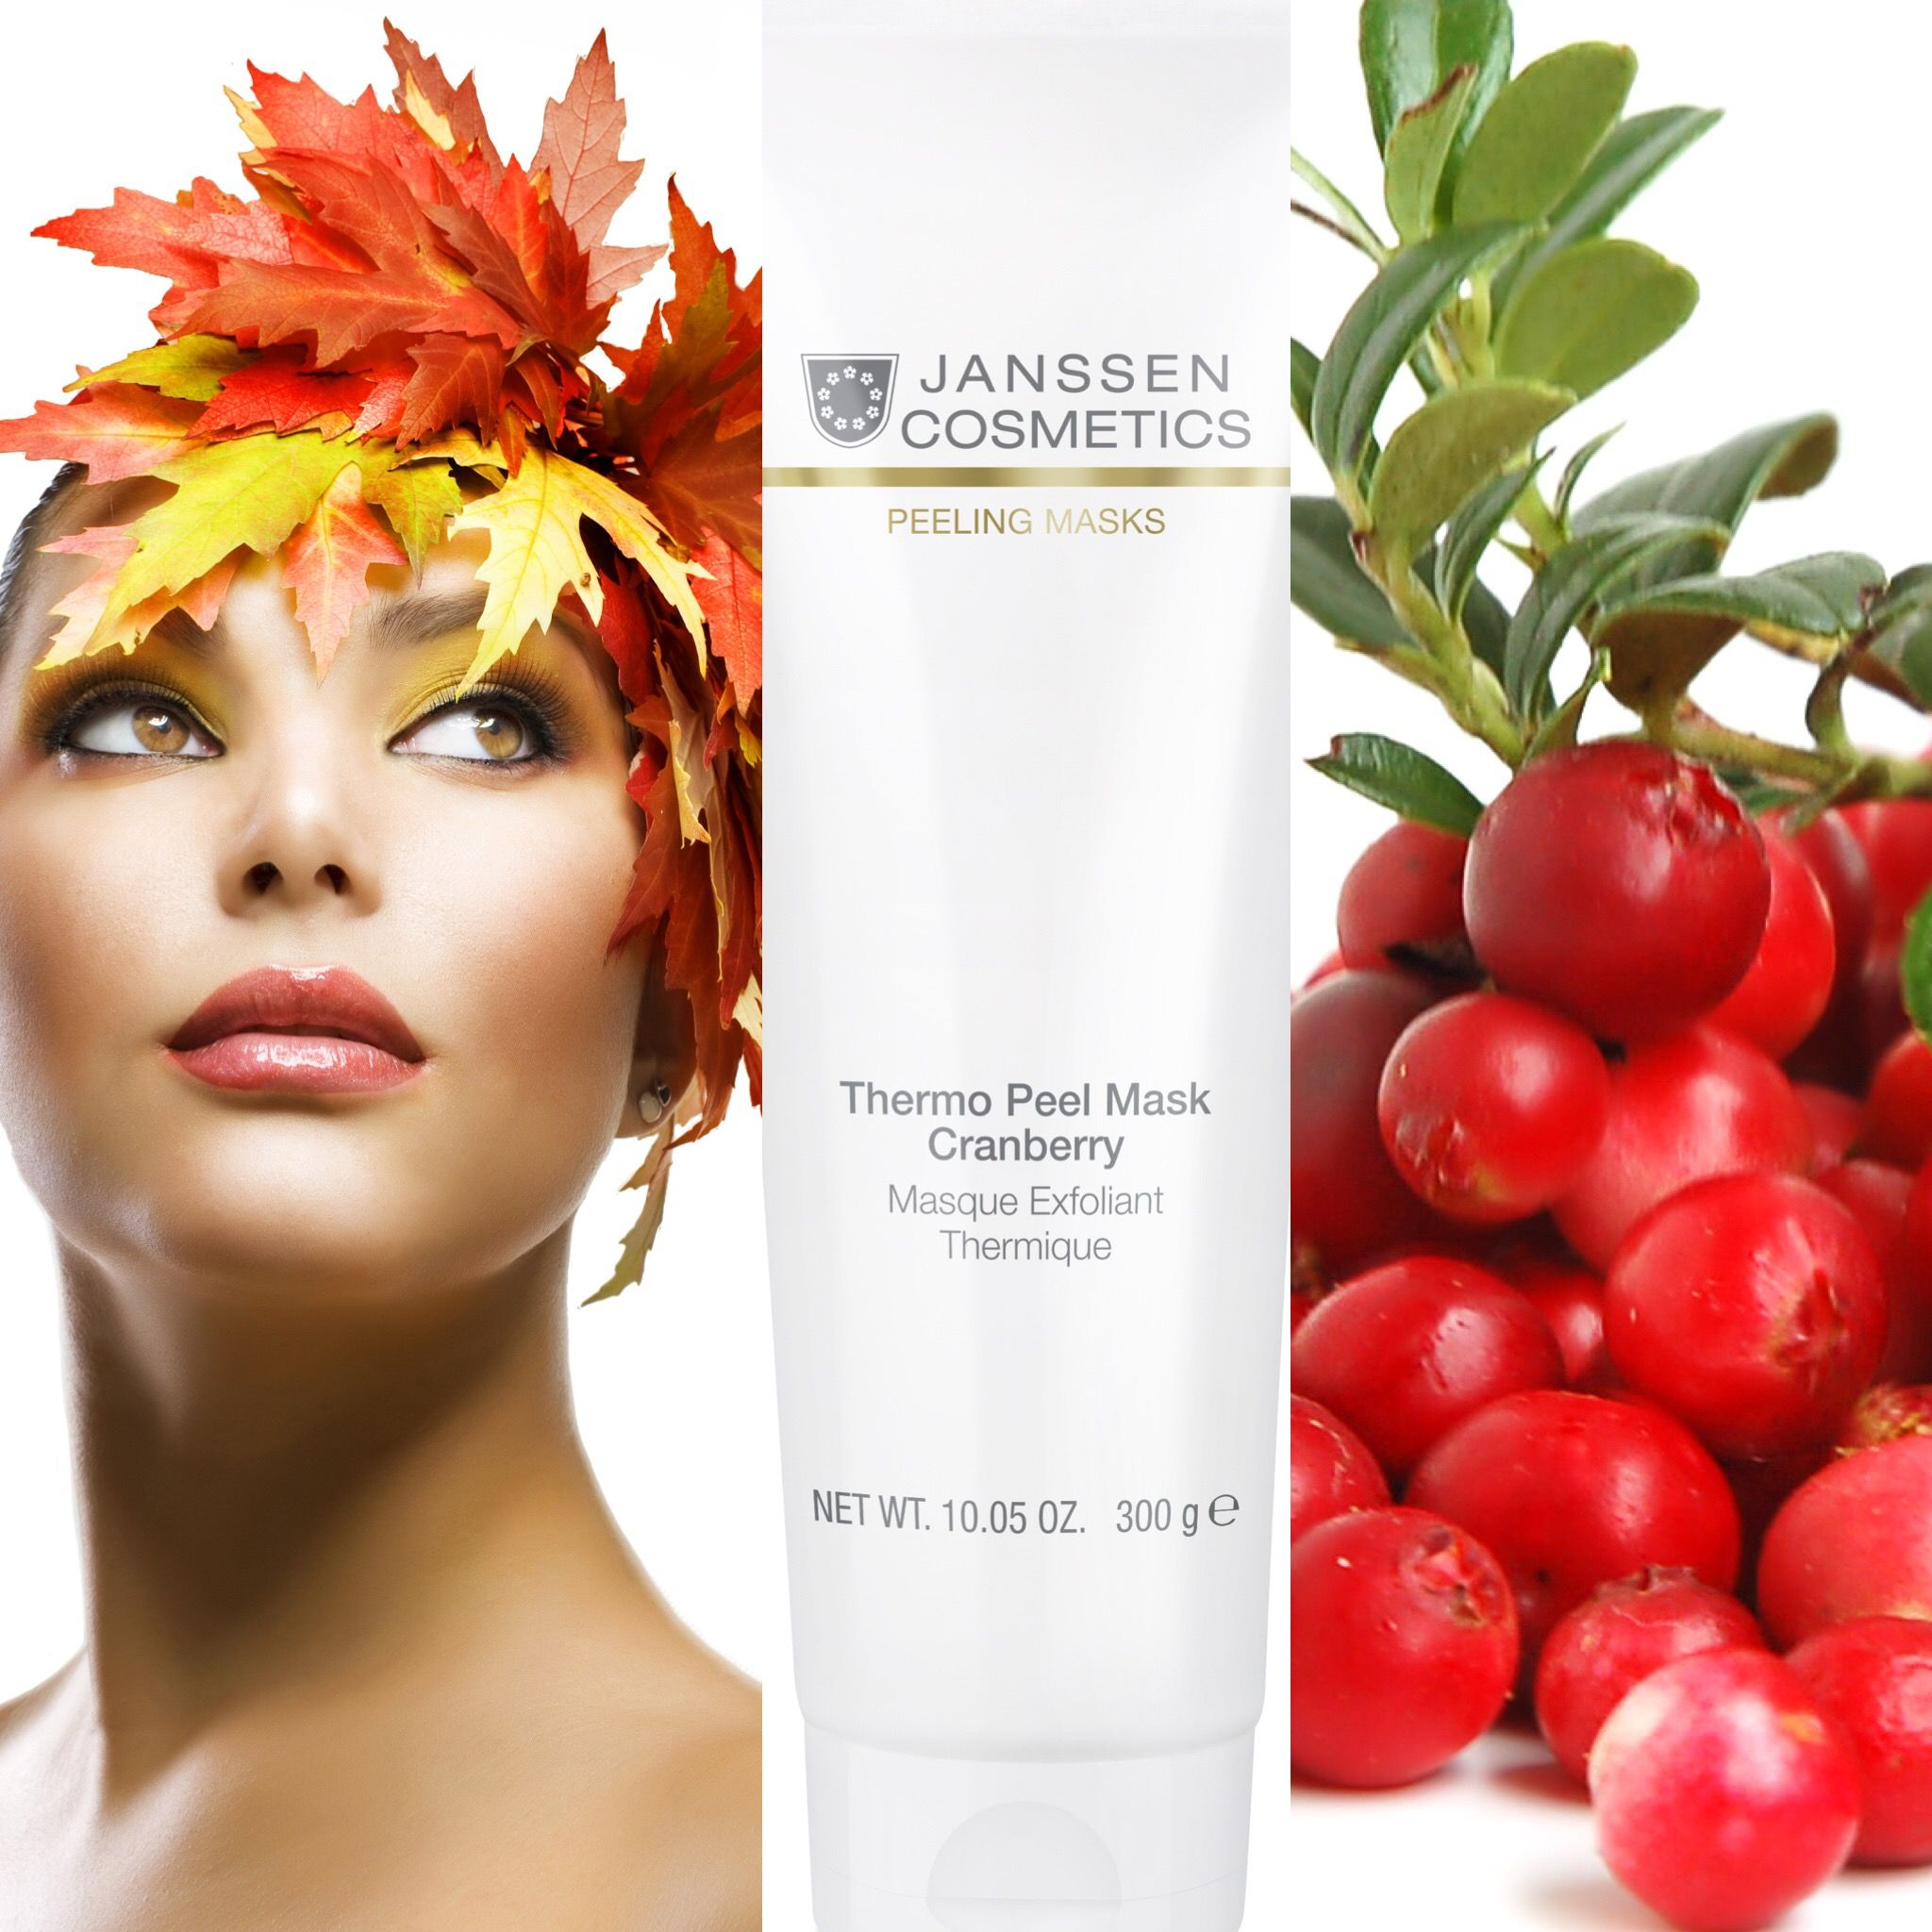 Treat Your Face This Fall To The Cranberry Thermo Peel Mask By Janssen Cosmetics This Masque Smooths And Hydrates Skin Hydrate Skin Peeling Mask Younger Skin